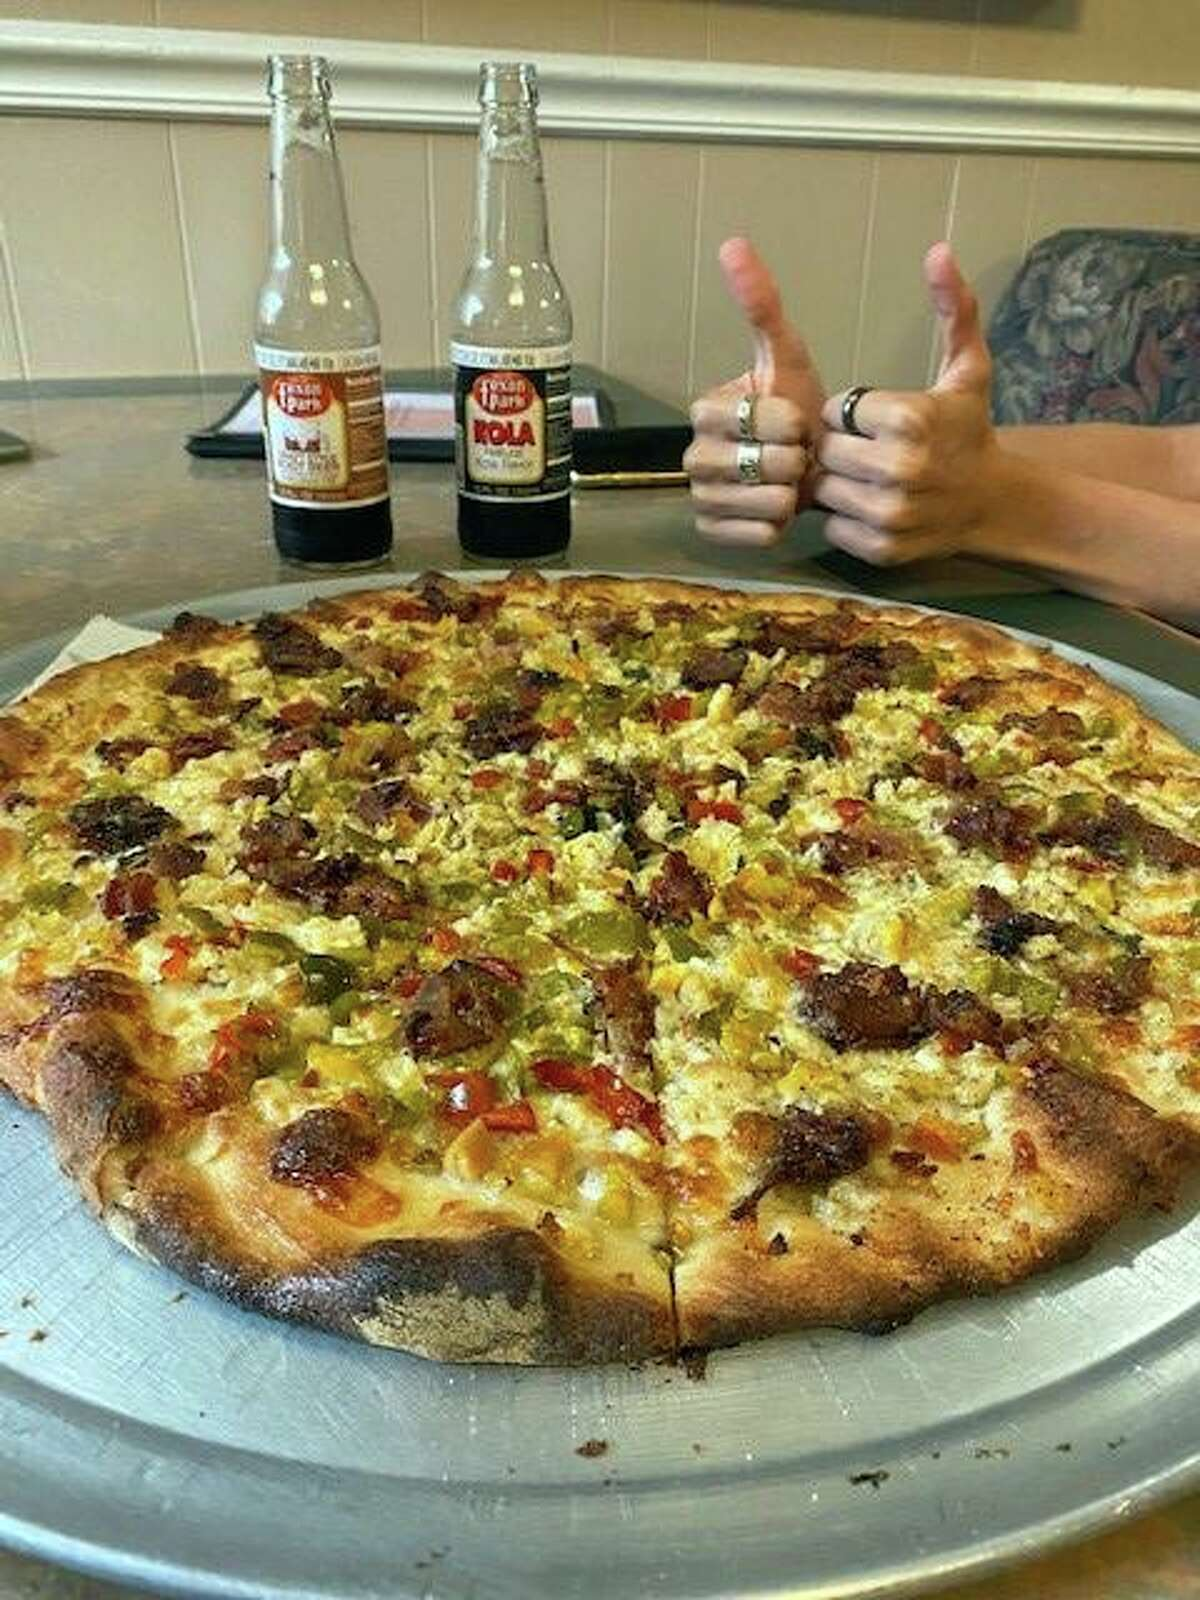 Ordering another soda instead of Foxon Park with your pizza - blasphemous, Vinnie Penn says.